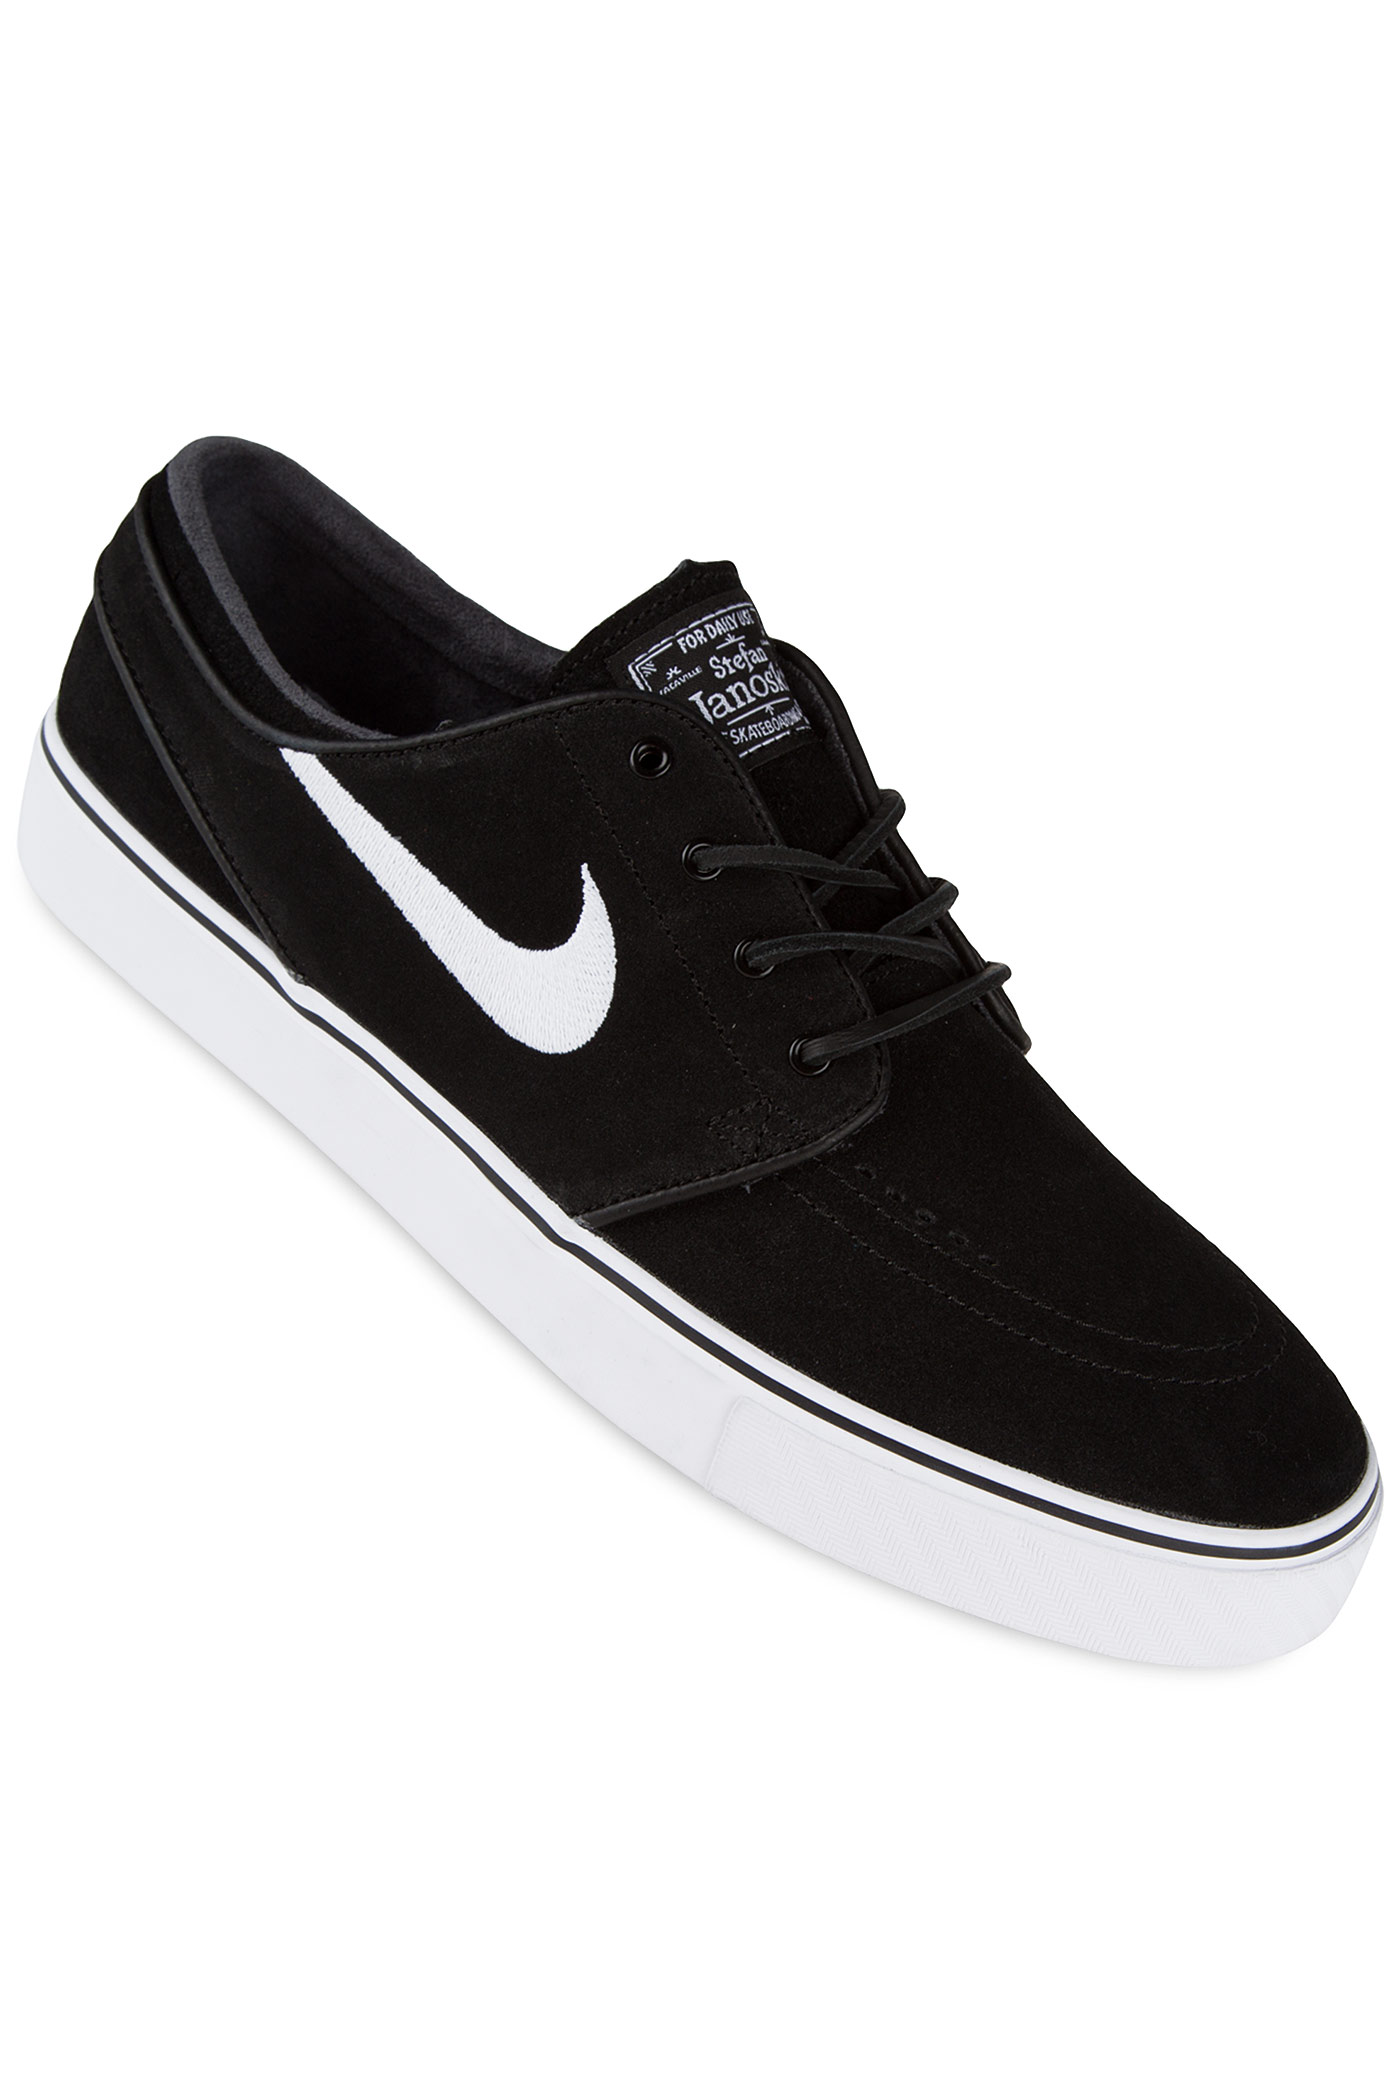 Janoski Shoes Brown